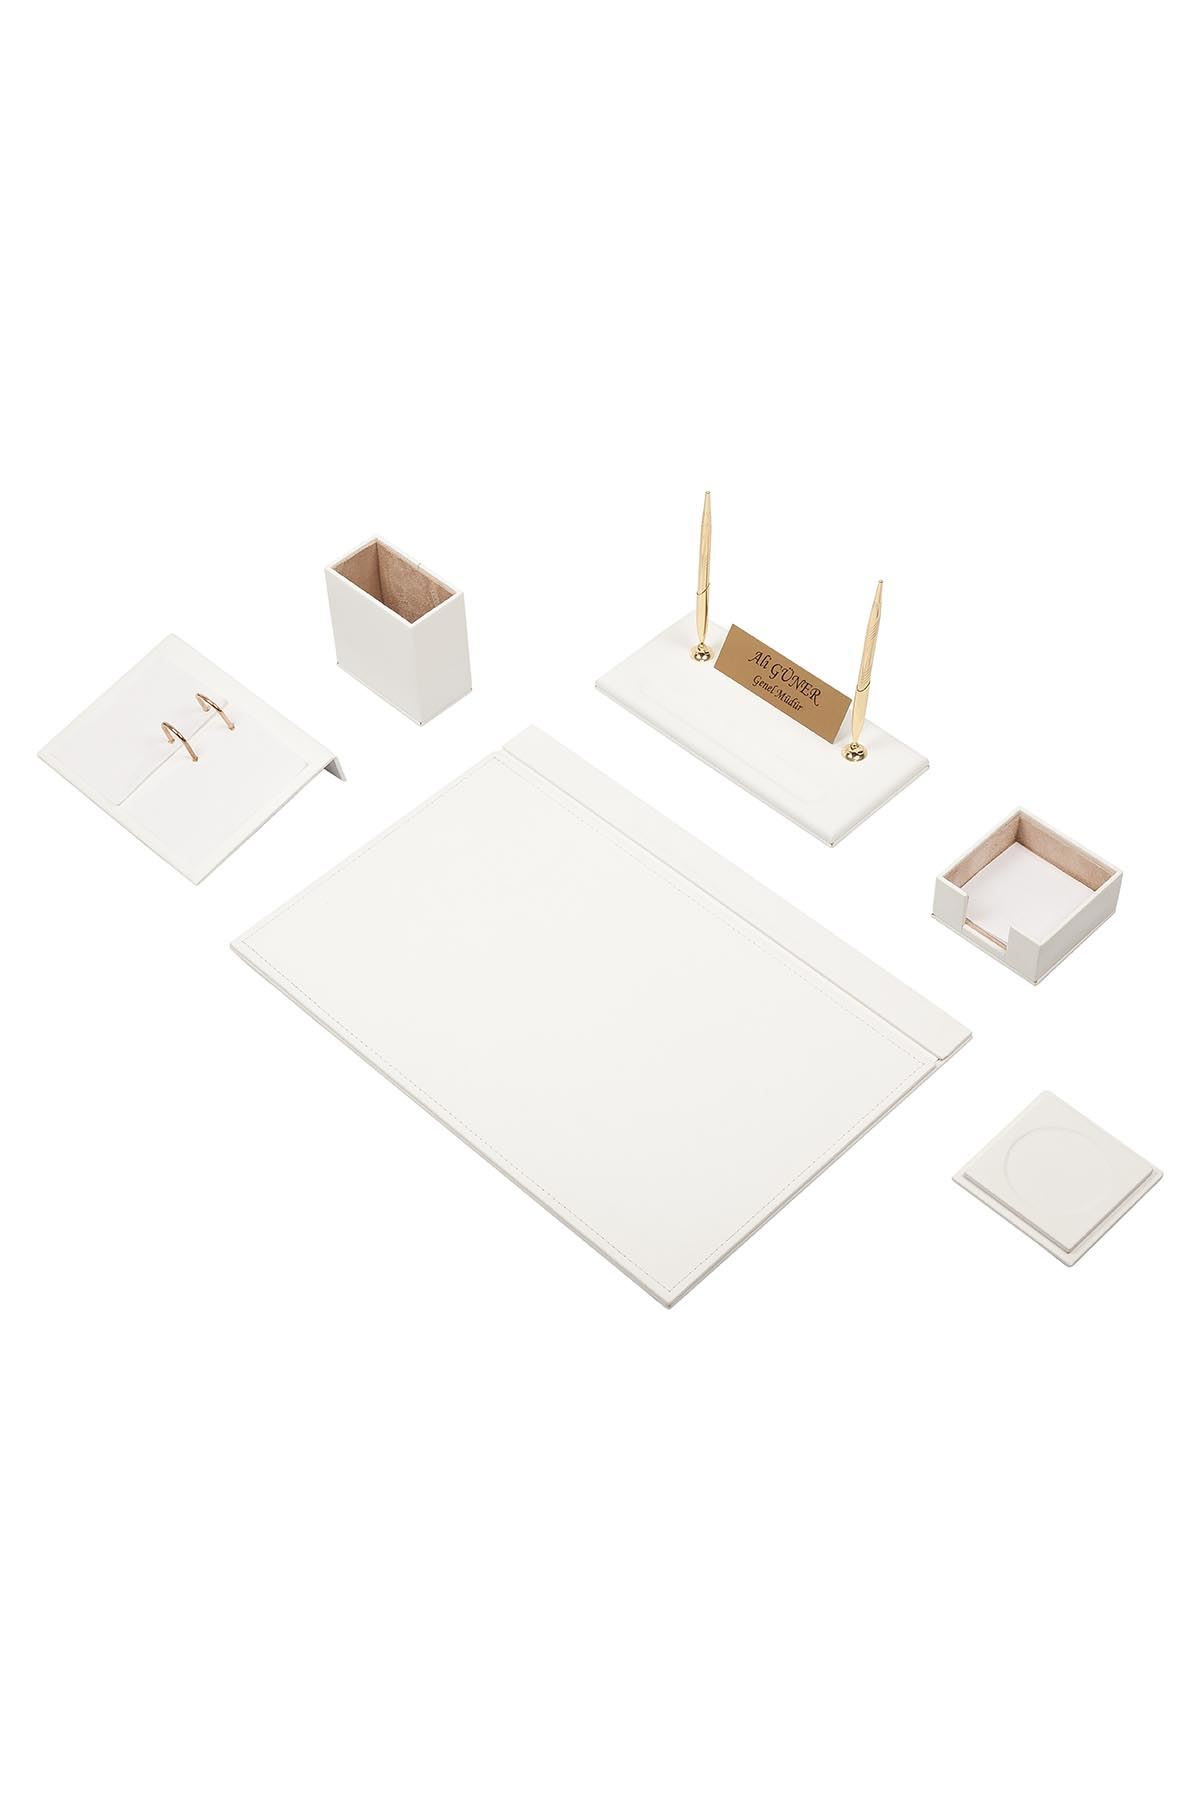 Leather Desk Set 8 Accessories White